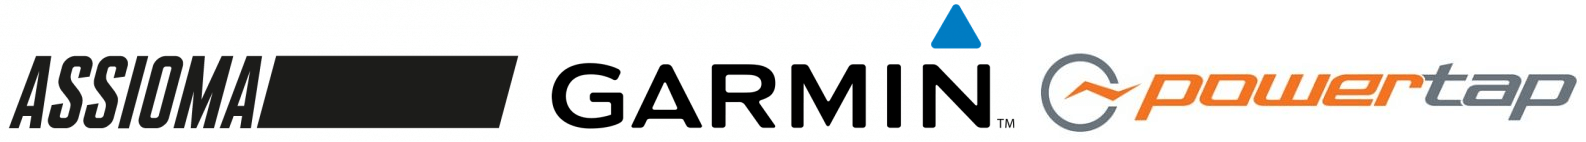 Image of Assioma, Garmin, and PowerTap Logos